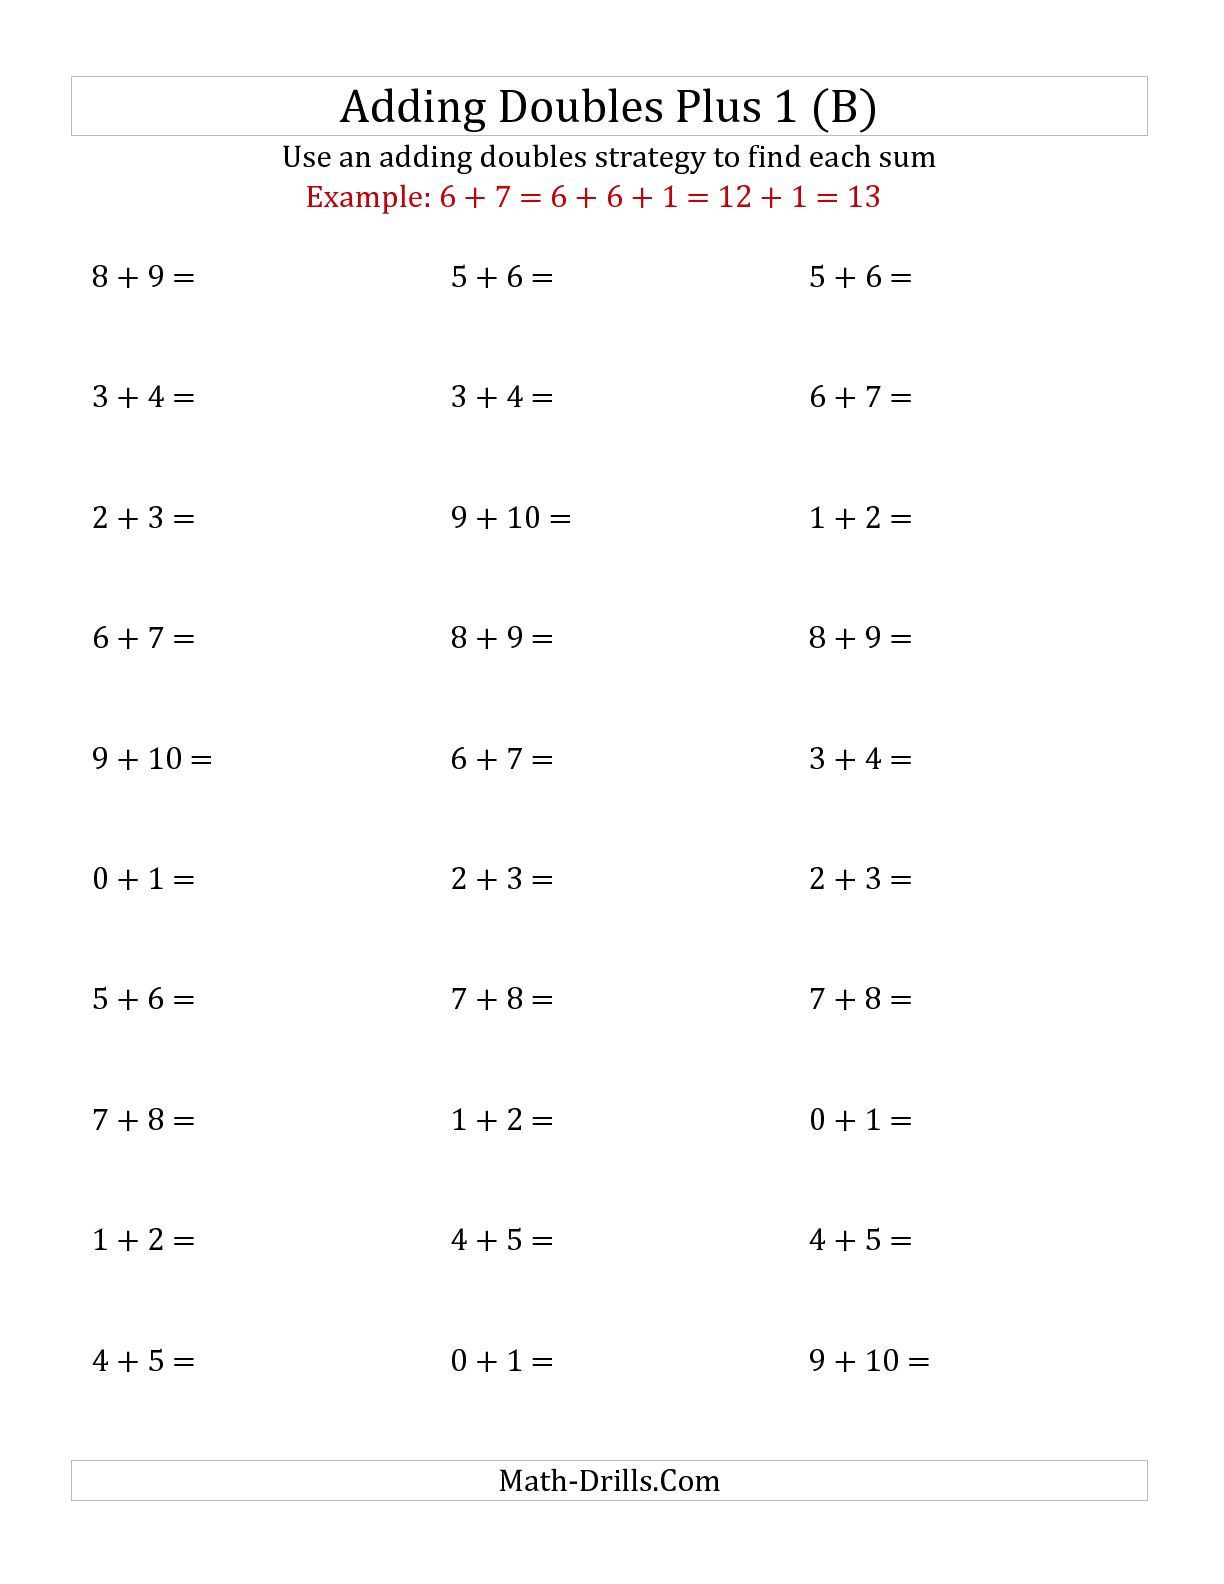 Doubles Math Facts Worksheet the Adding Doubles Plus 1 Small Numbers B Addition